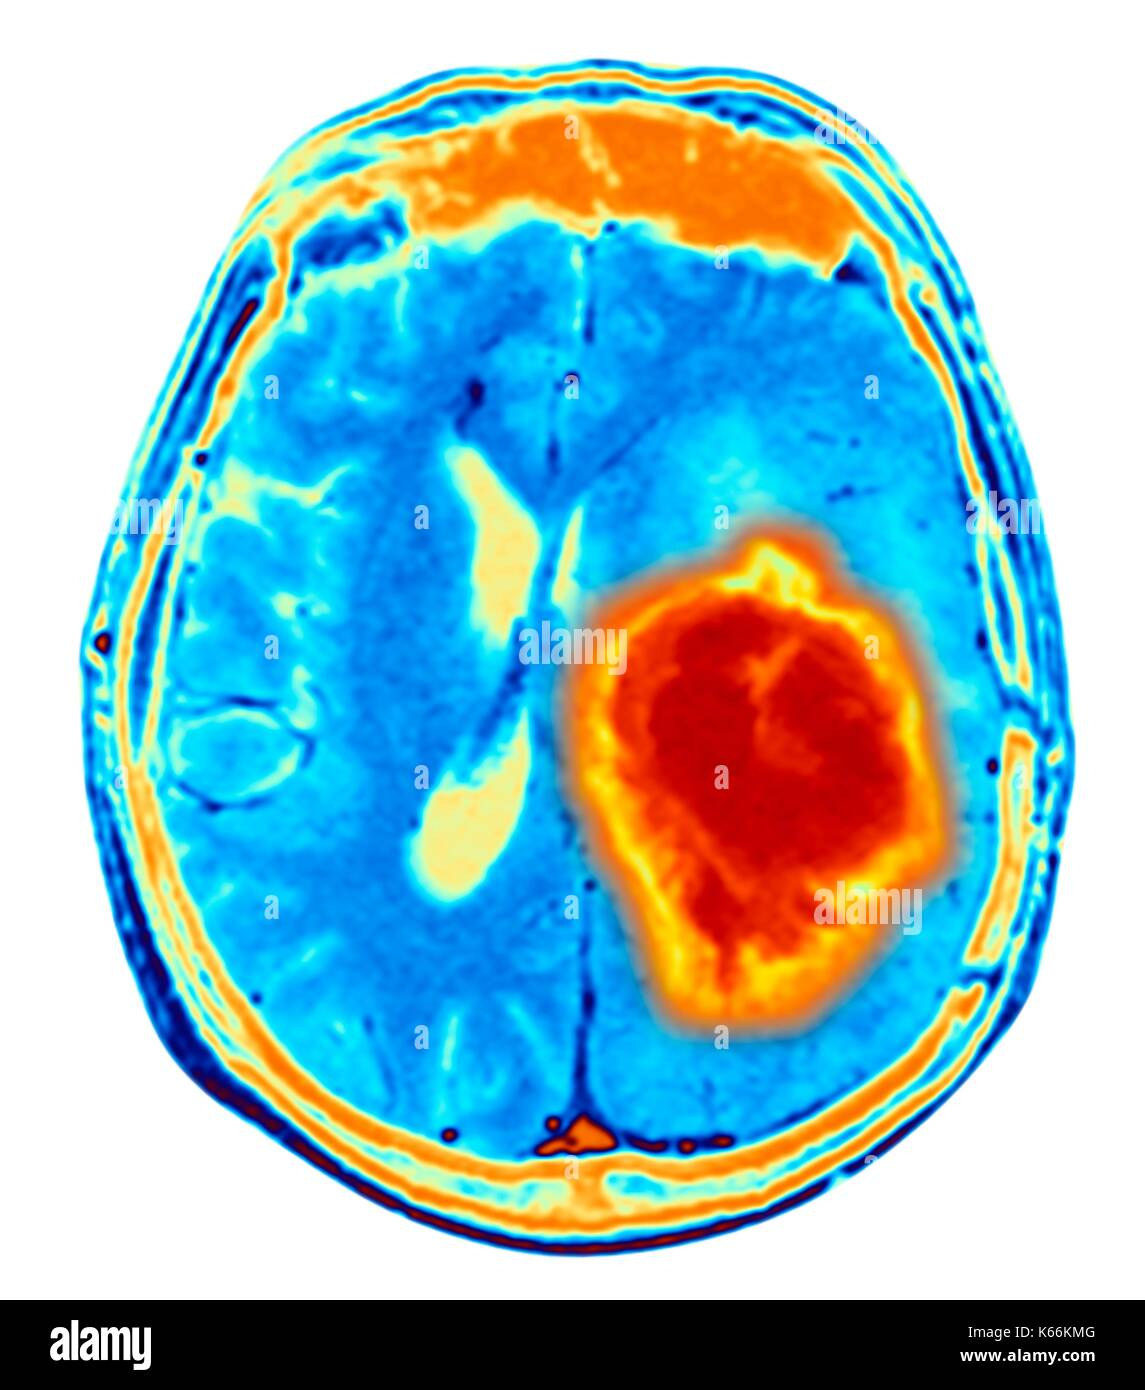 Brain tumour. Coloured Magnetic Resonance Imaging (MRI) scan of an axial section through the brain showing a metastatic tumour. At bottom left is the tumour (red-yellow) This tumour occurs within one cerebral hemisphere; the other hemisphere is at right. The eyeballs - not visible -are at top. Metastatic cancer is a secondary disease spread from cancer elsewhere in the body. Metastatic brain tumours are malignant. Typically they cause brain compression and nerve damage - Stock Image